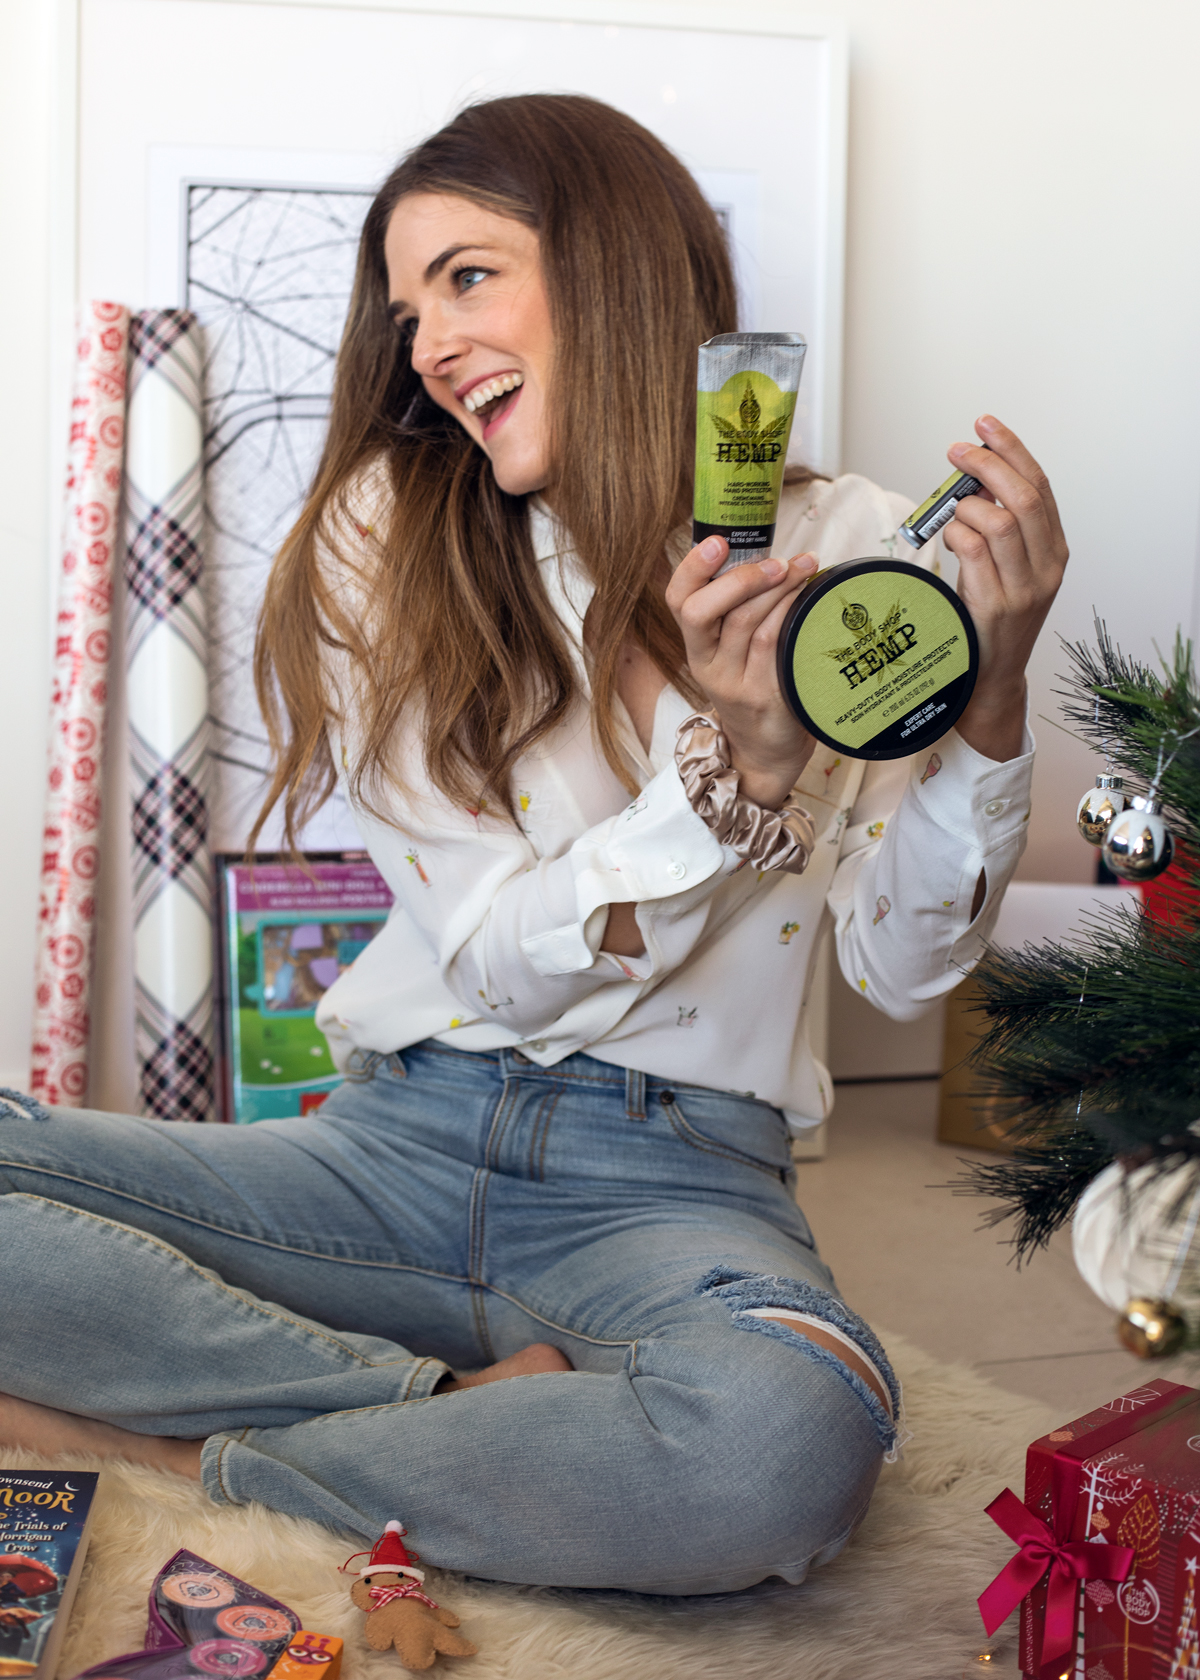 2018 Christmas gift guide Inspiring Wit blog featuring men's gifts The Body Shop Hemp Skincare products